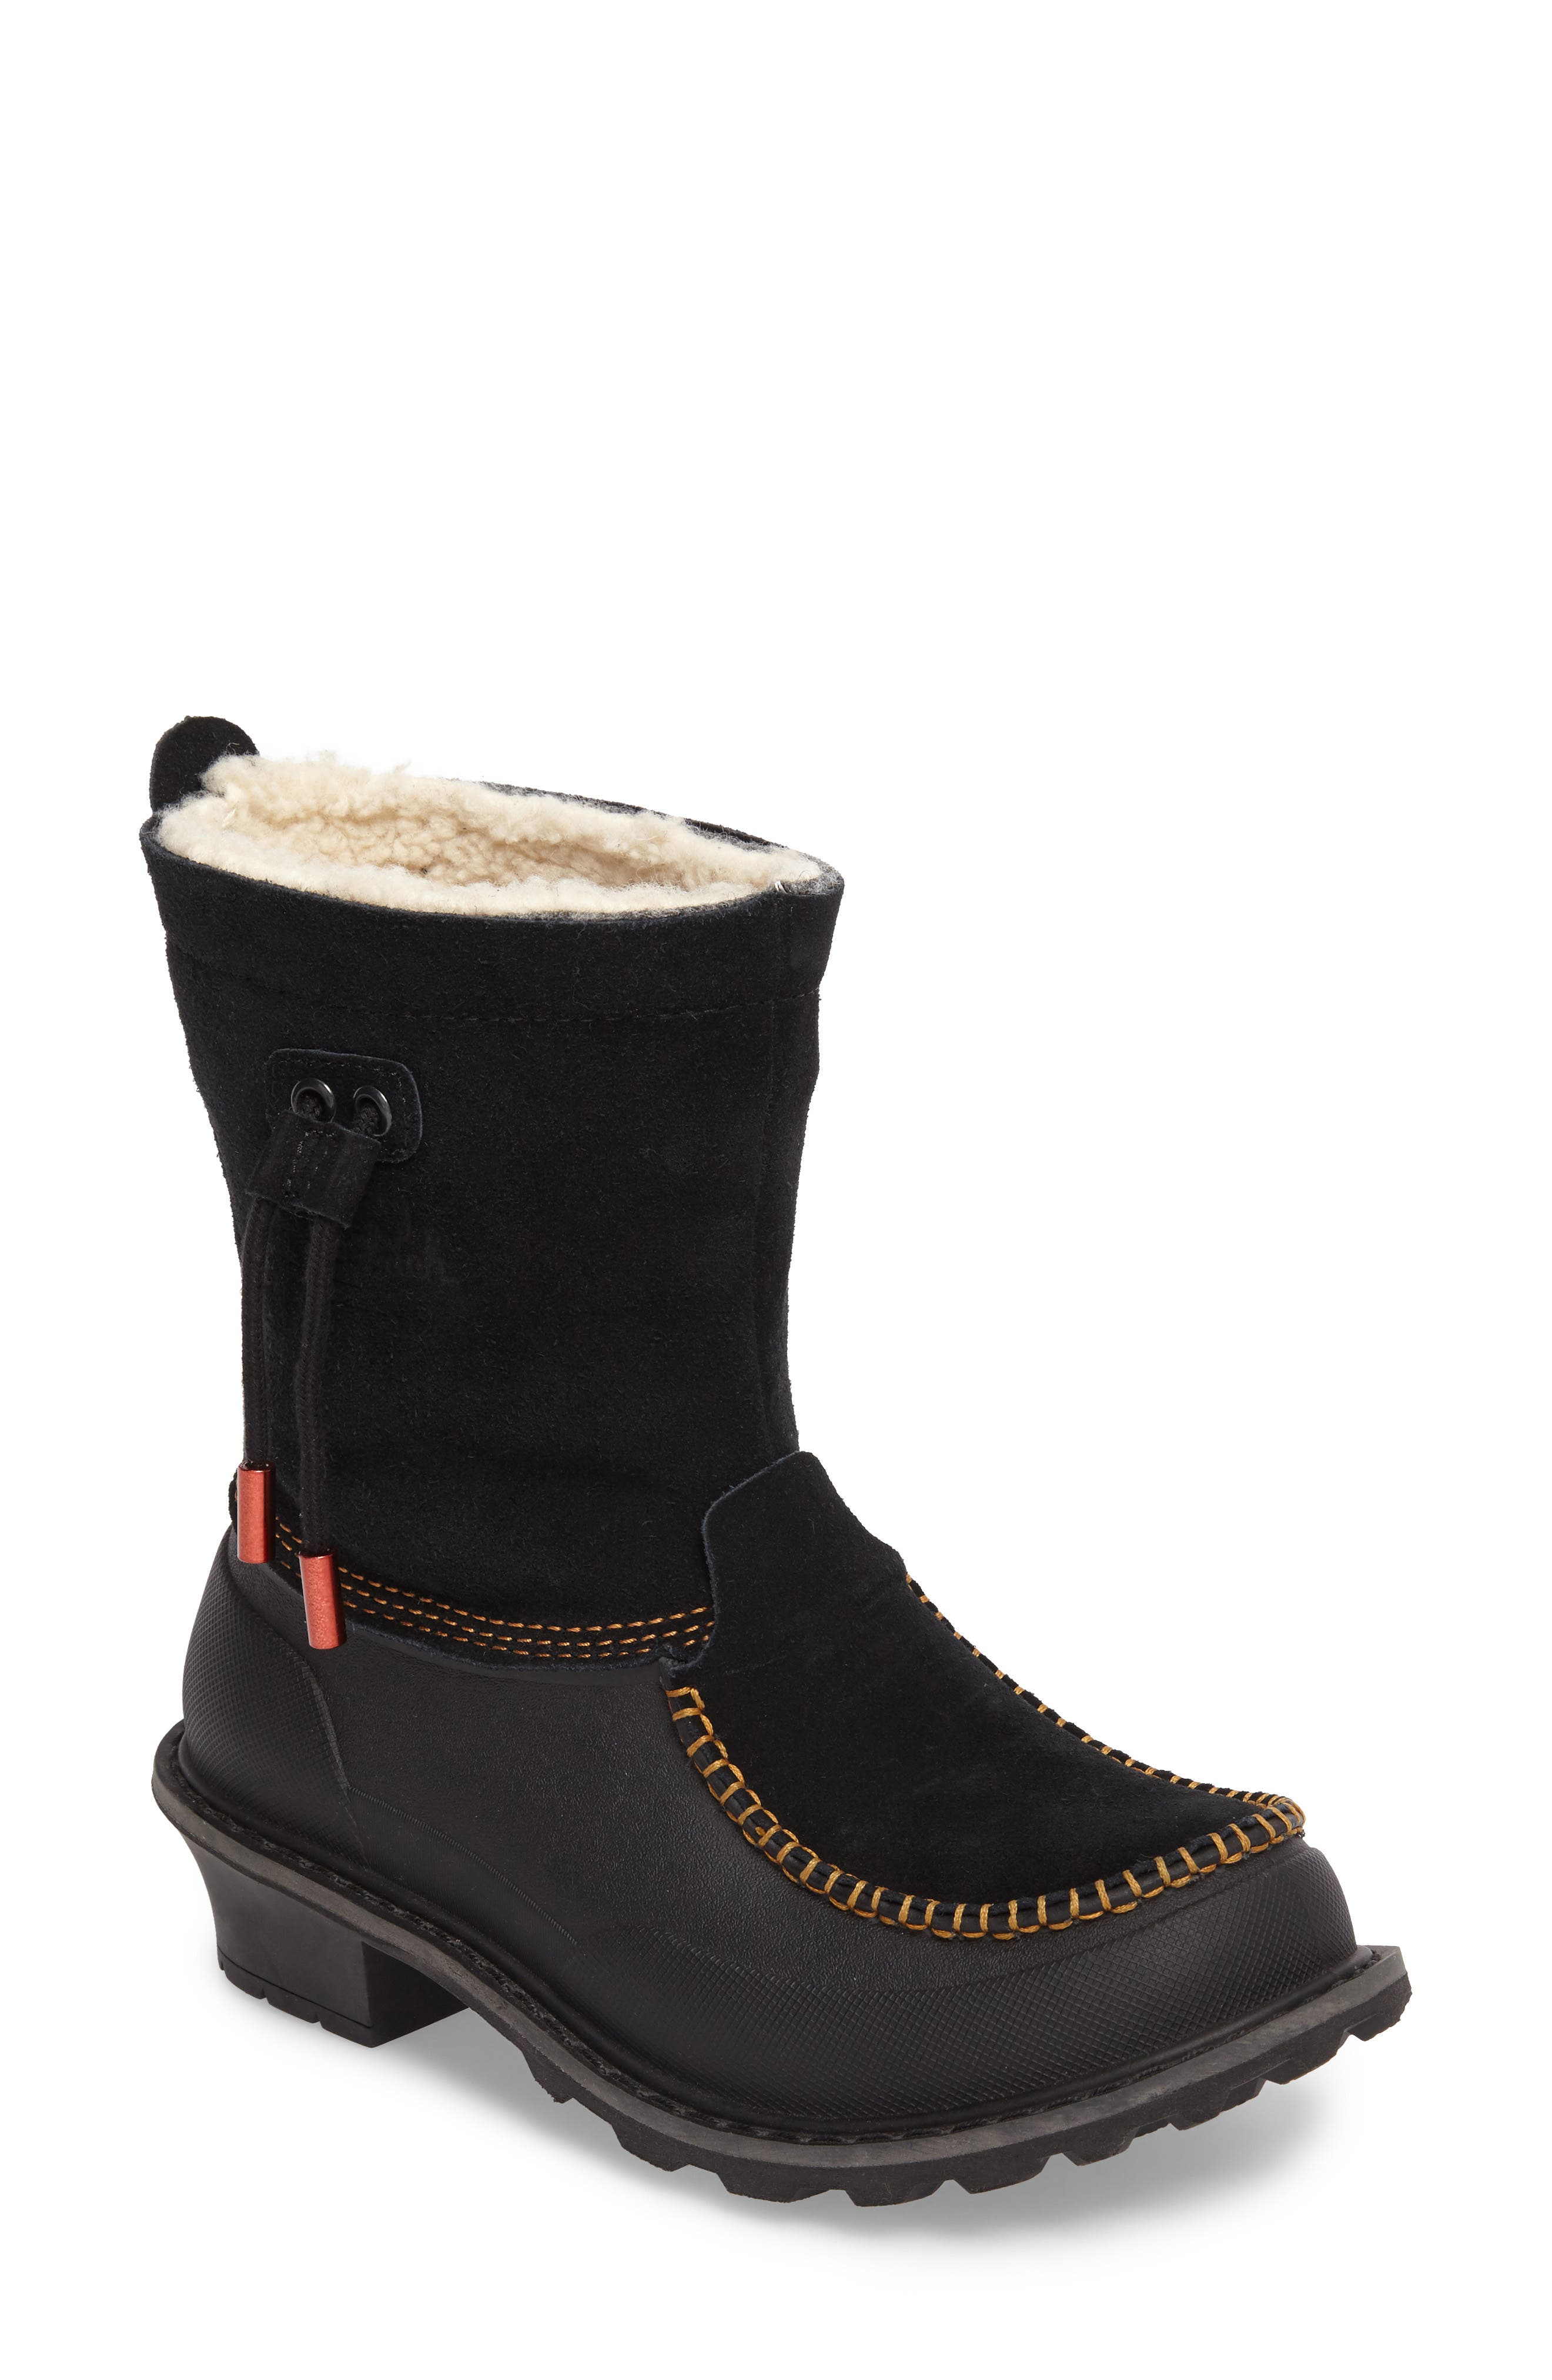 Fully Wooly Waterproof Winter Boot,                             Main thumbnail 1, color,